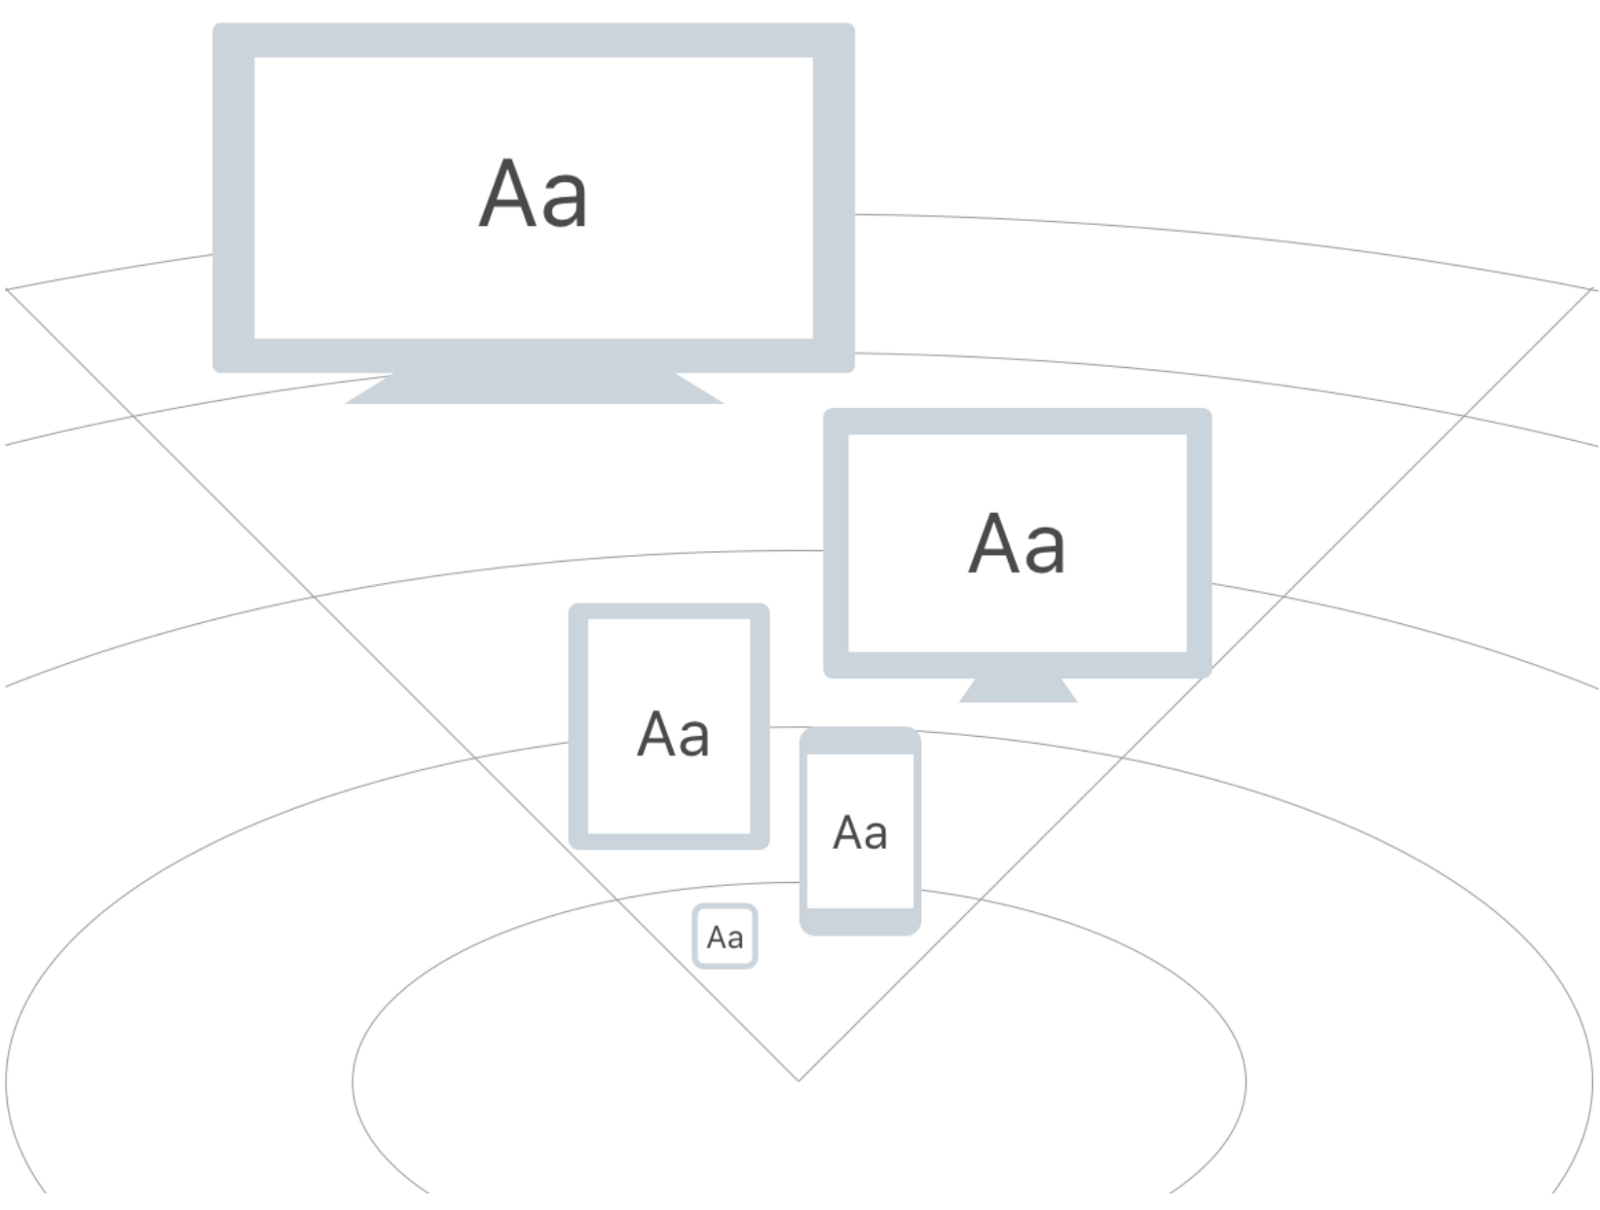 3 things to keep in mind to master Responsive Typography